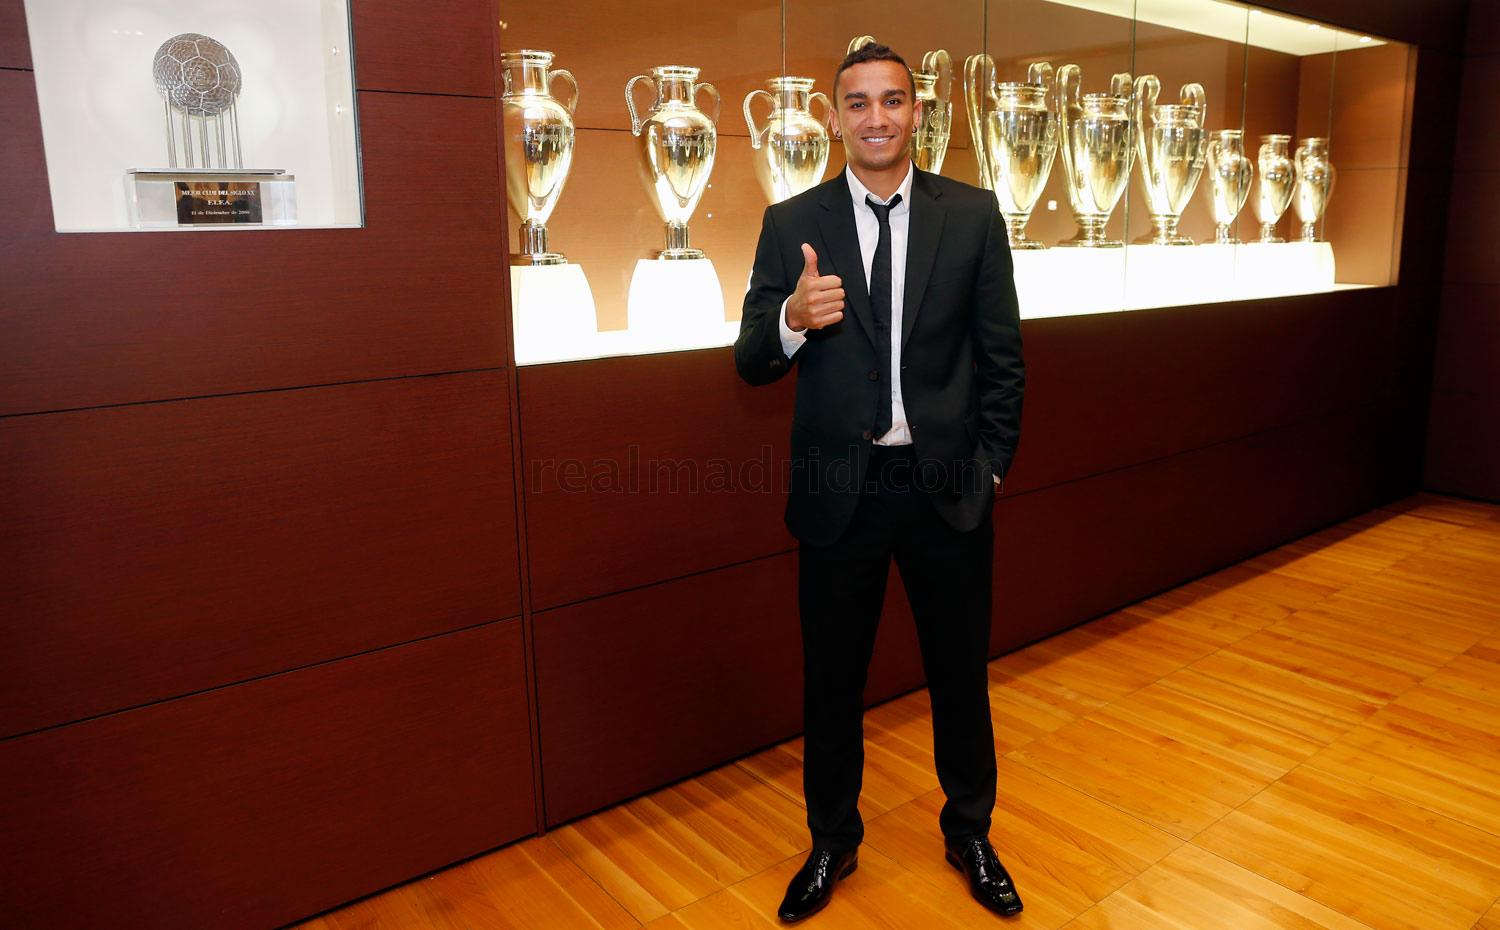 Real Madrid - Danilo firma su contrato con el Real Madrid - 09-07-2015